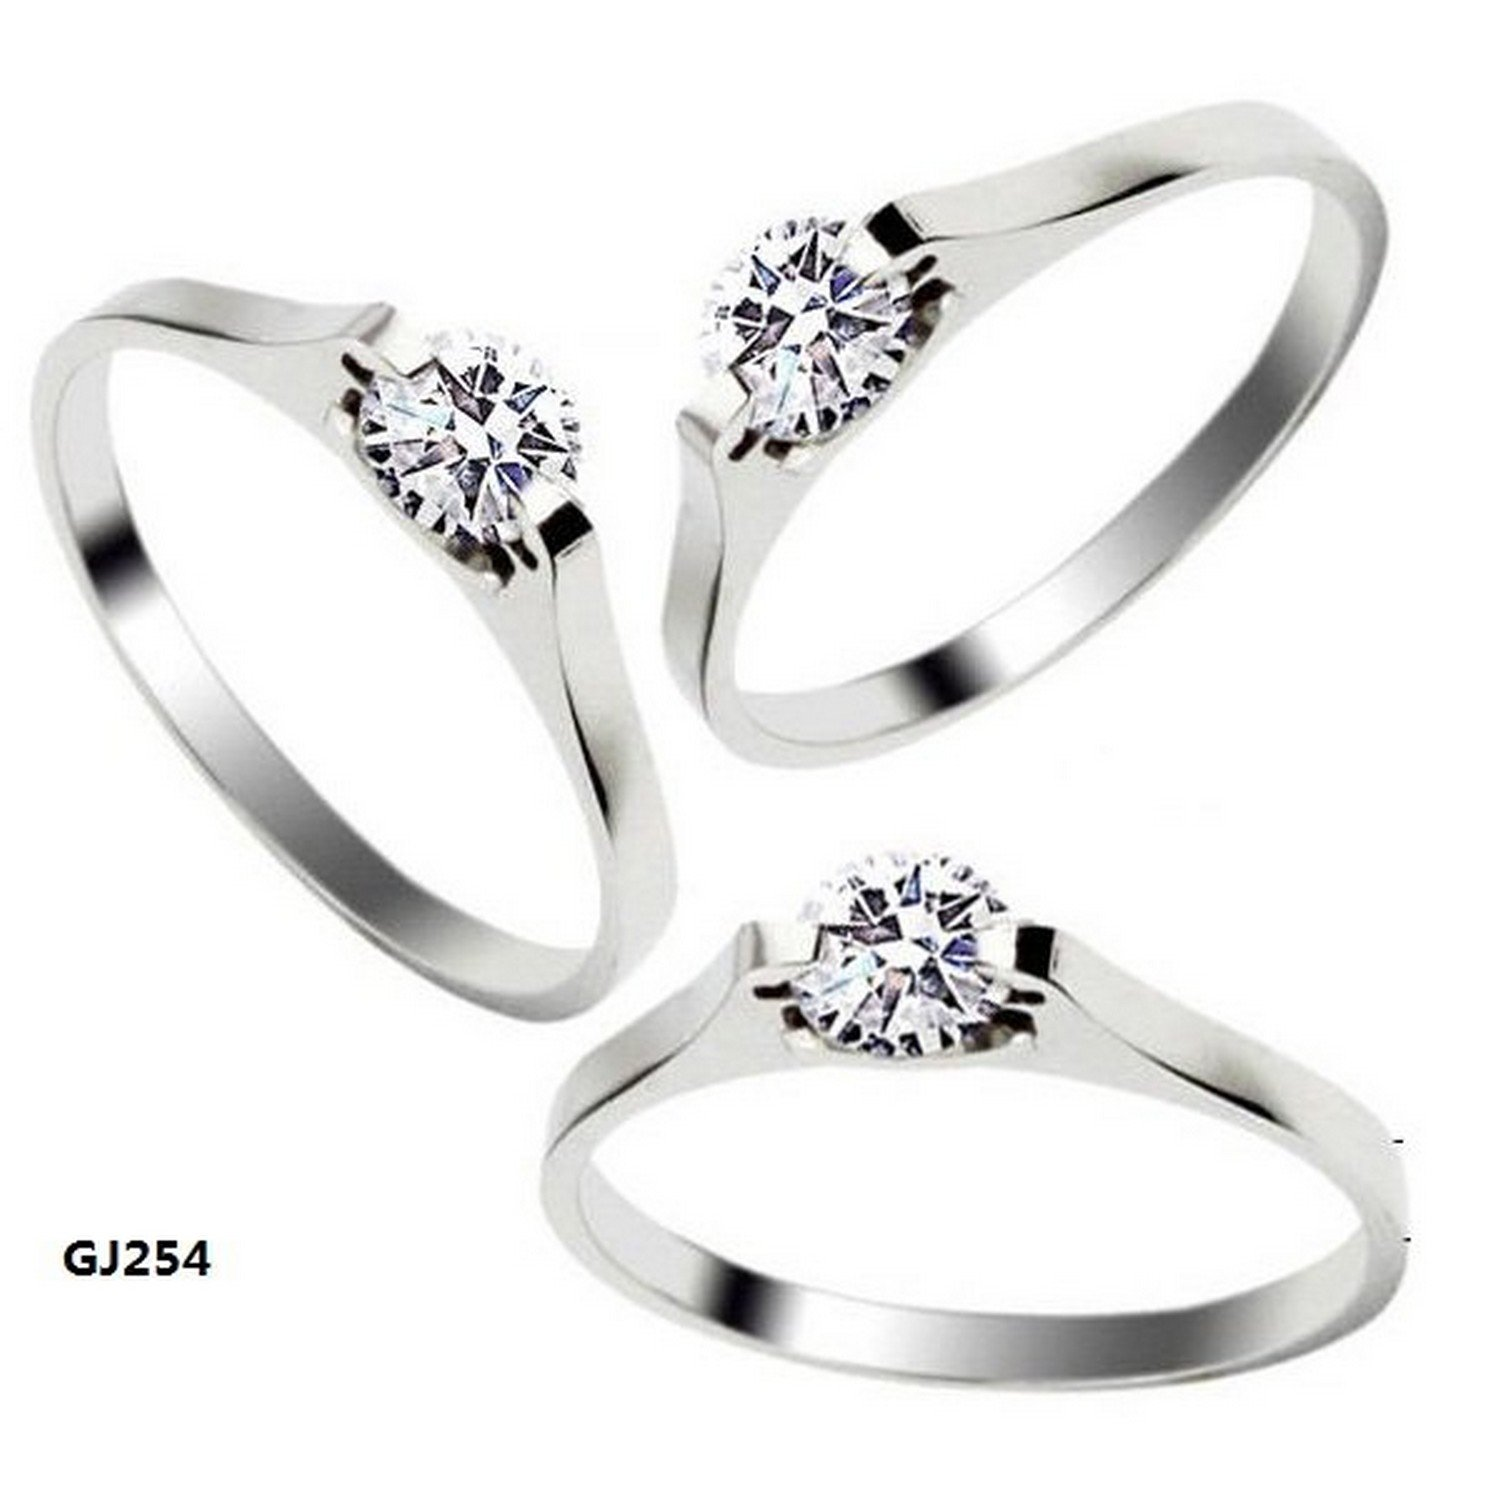 GemMart Jewelry Fashion Jewelry 316L Stainless Steel Women Ring Silver Simple CZ Zircon Ring Wedding Ring Engagement Ring GJ254